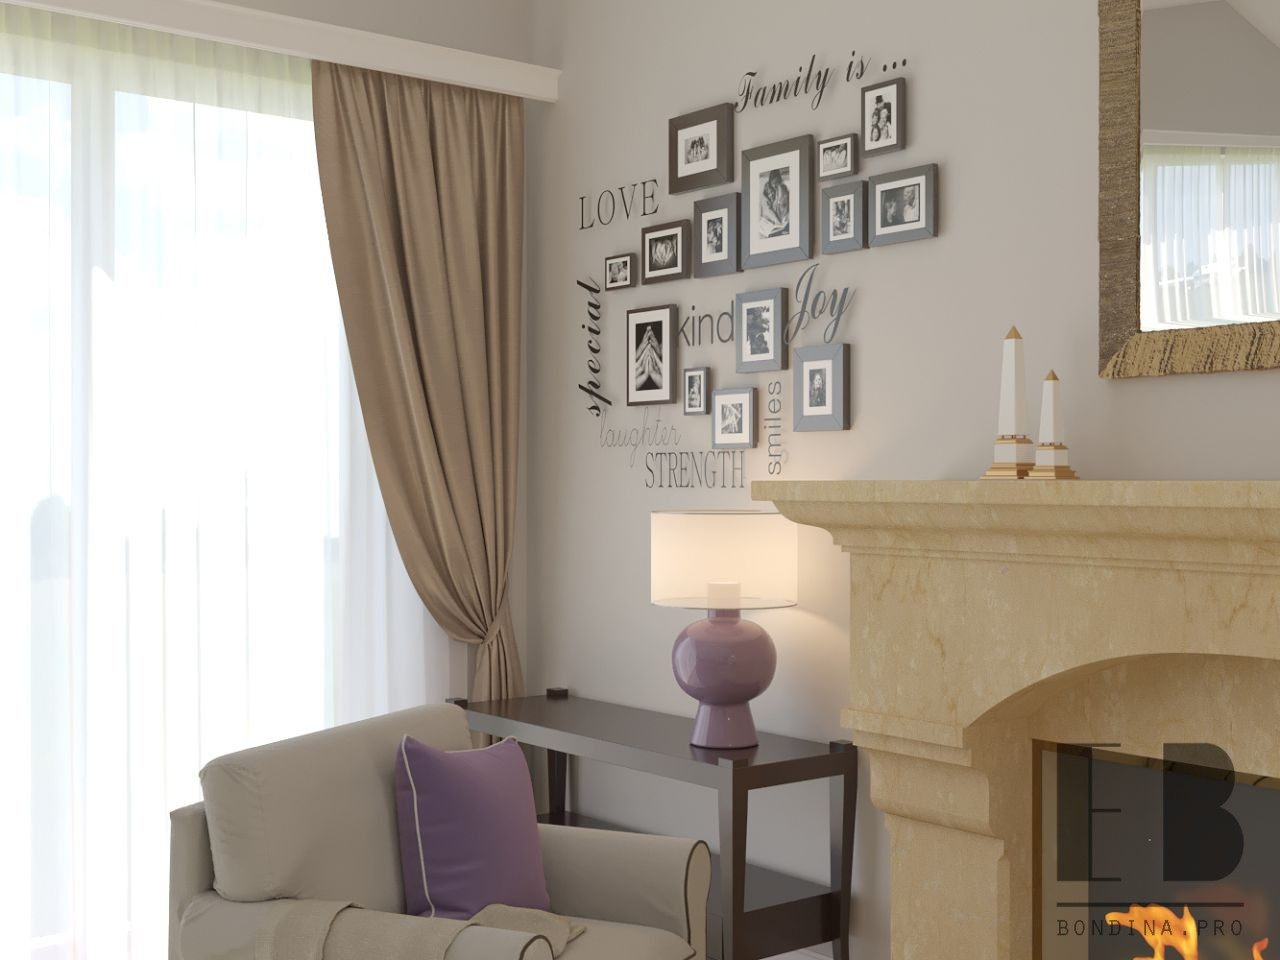 Photo collage in the living room design